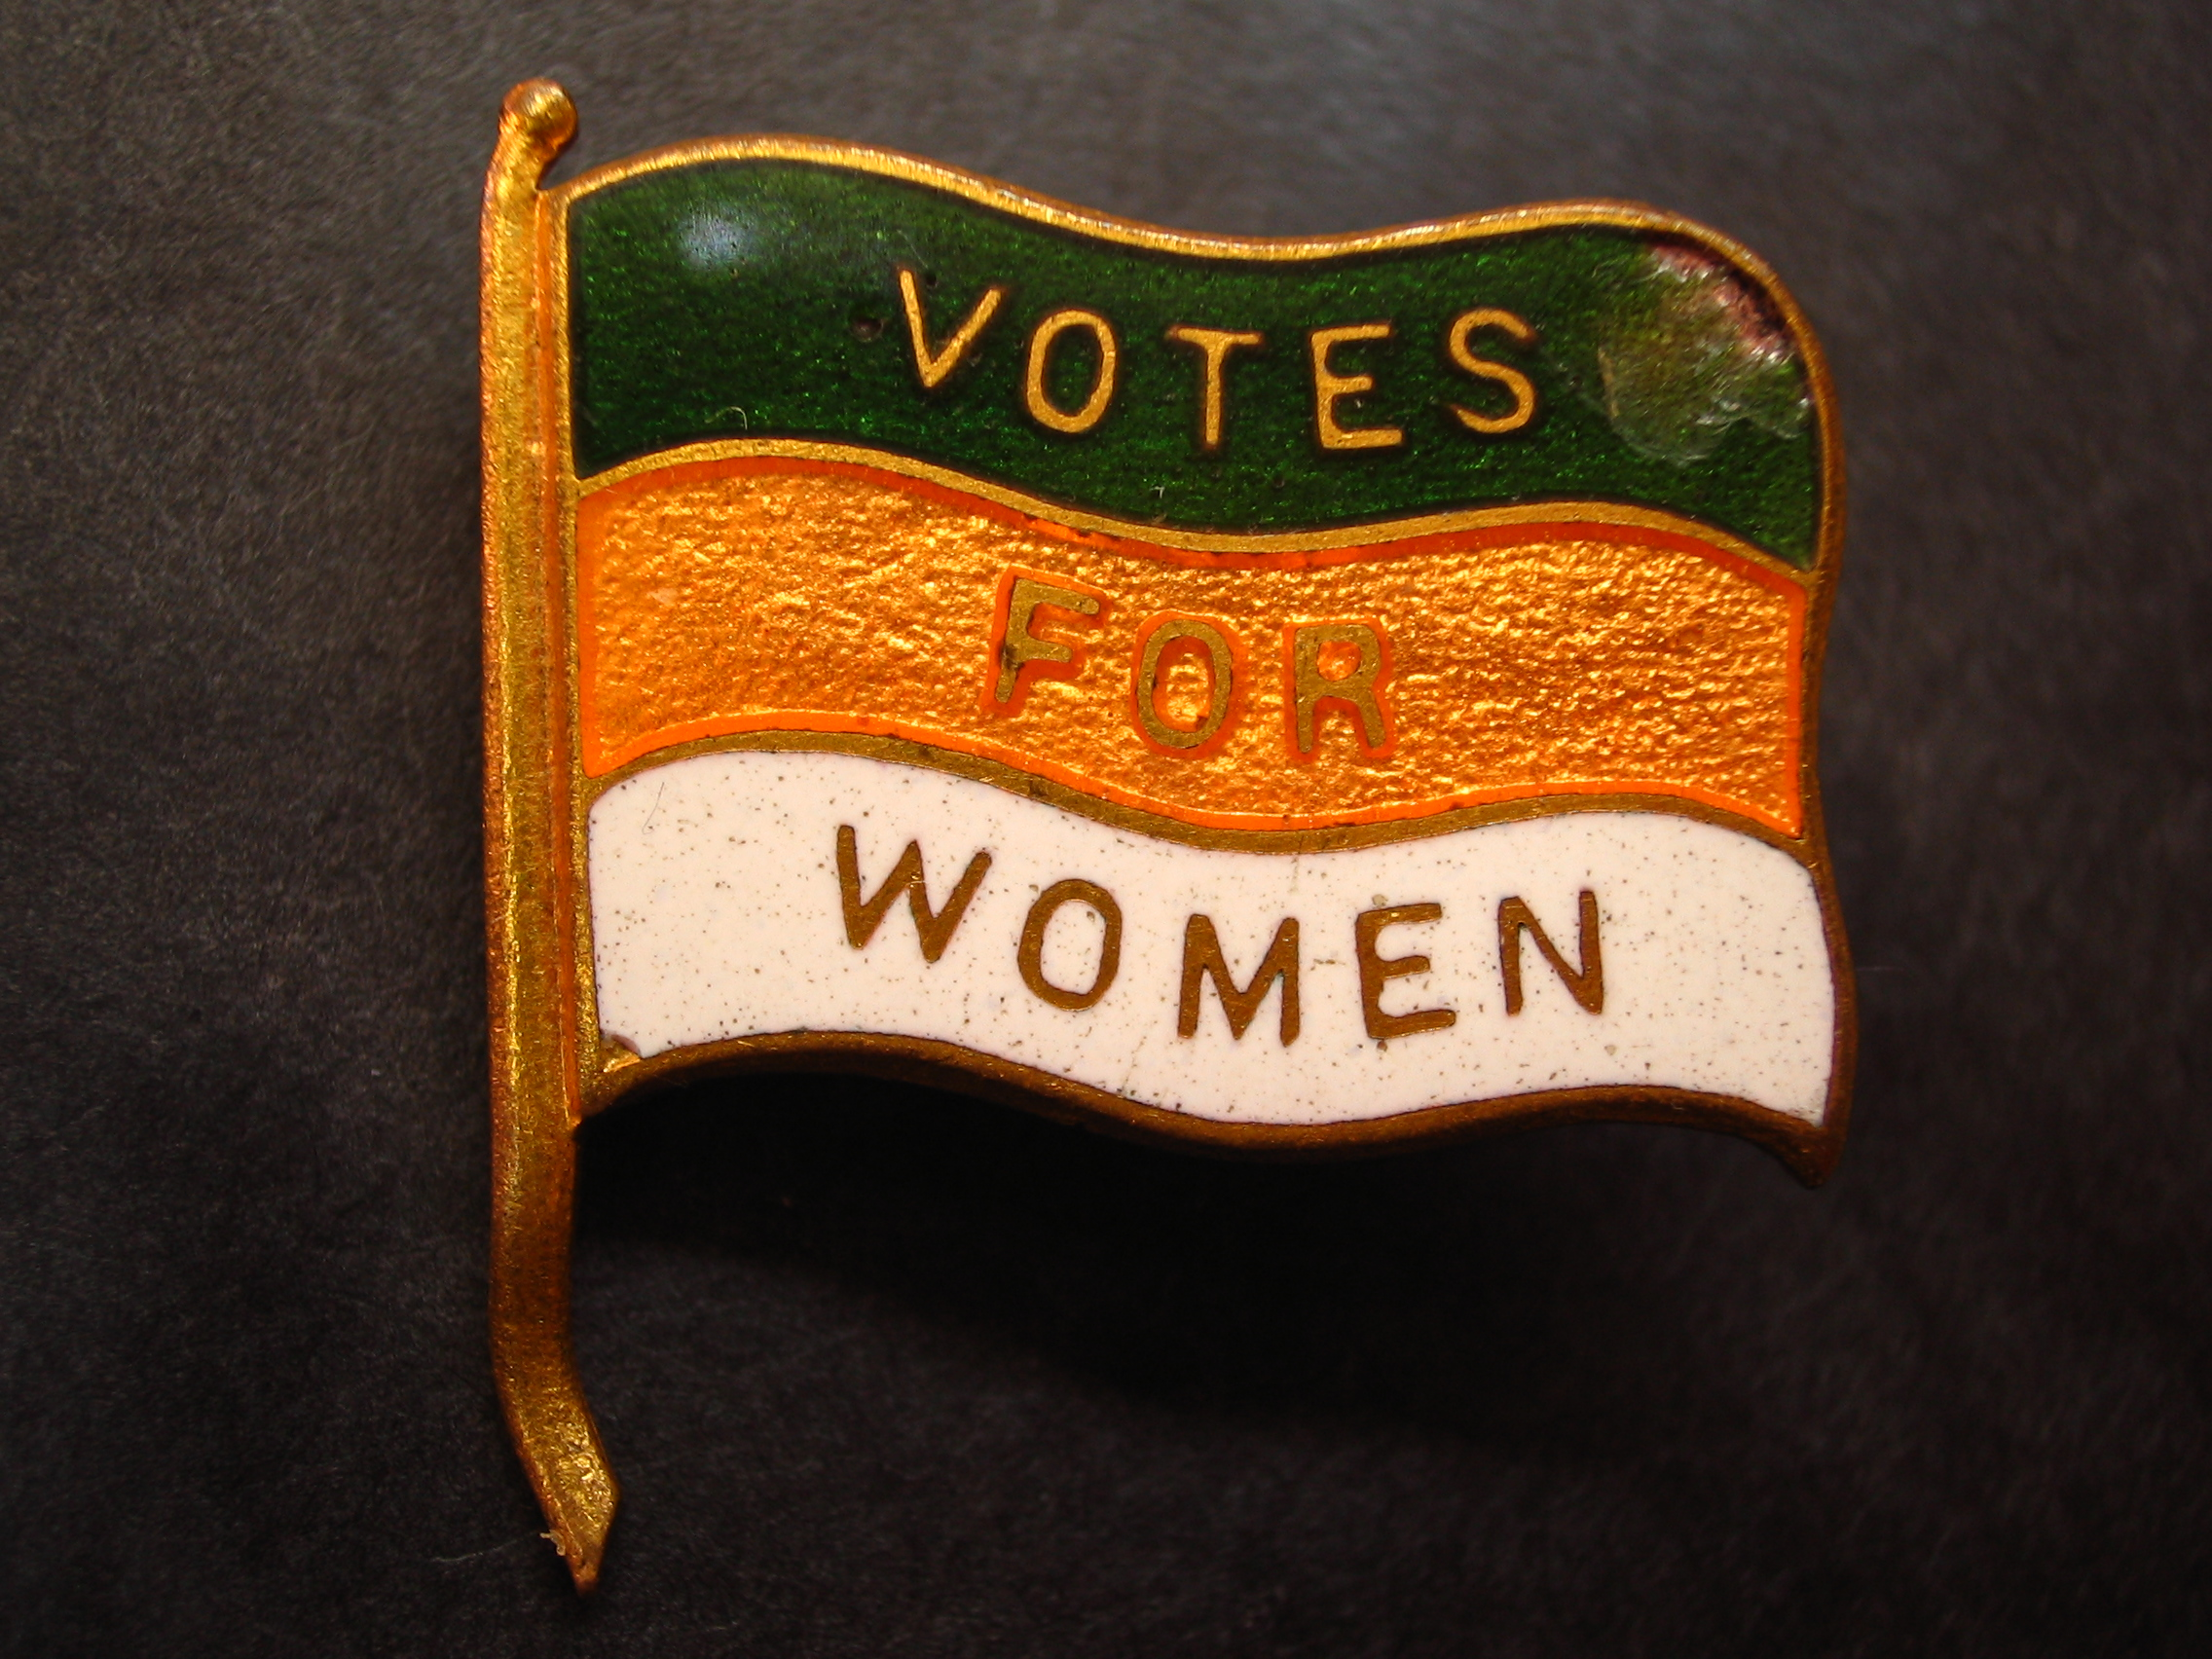 Interesting frye republican vintage political button has analogues?